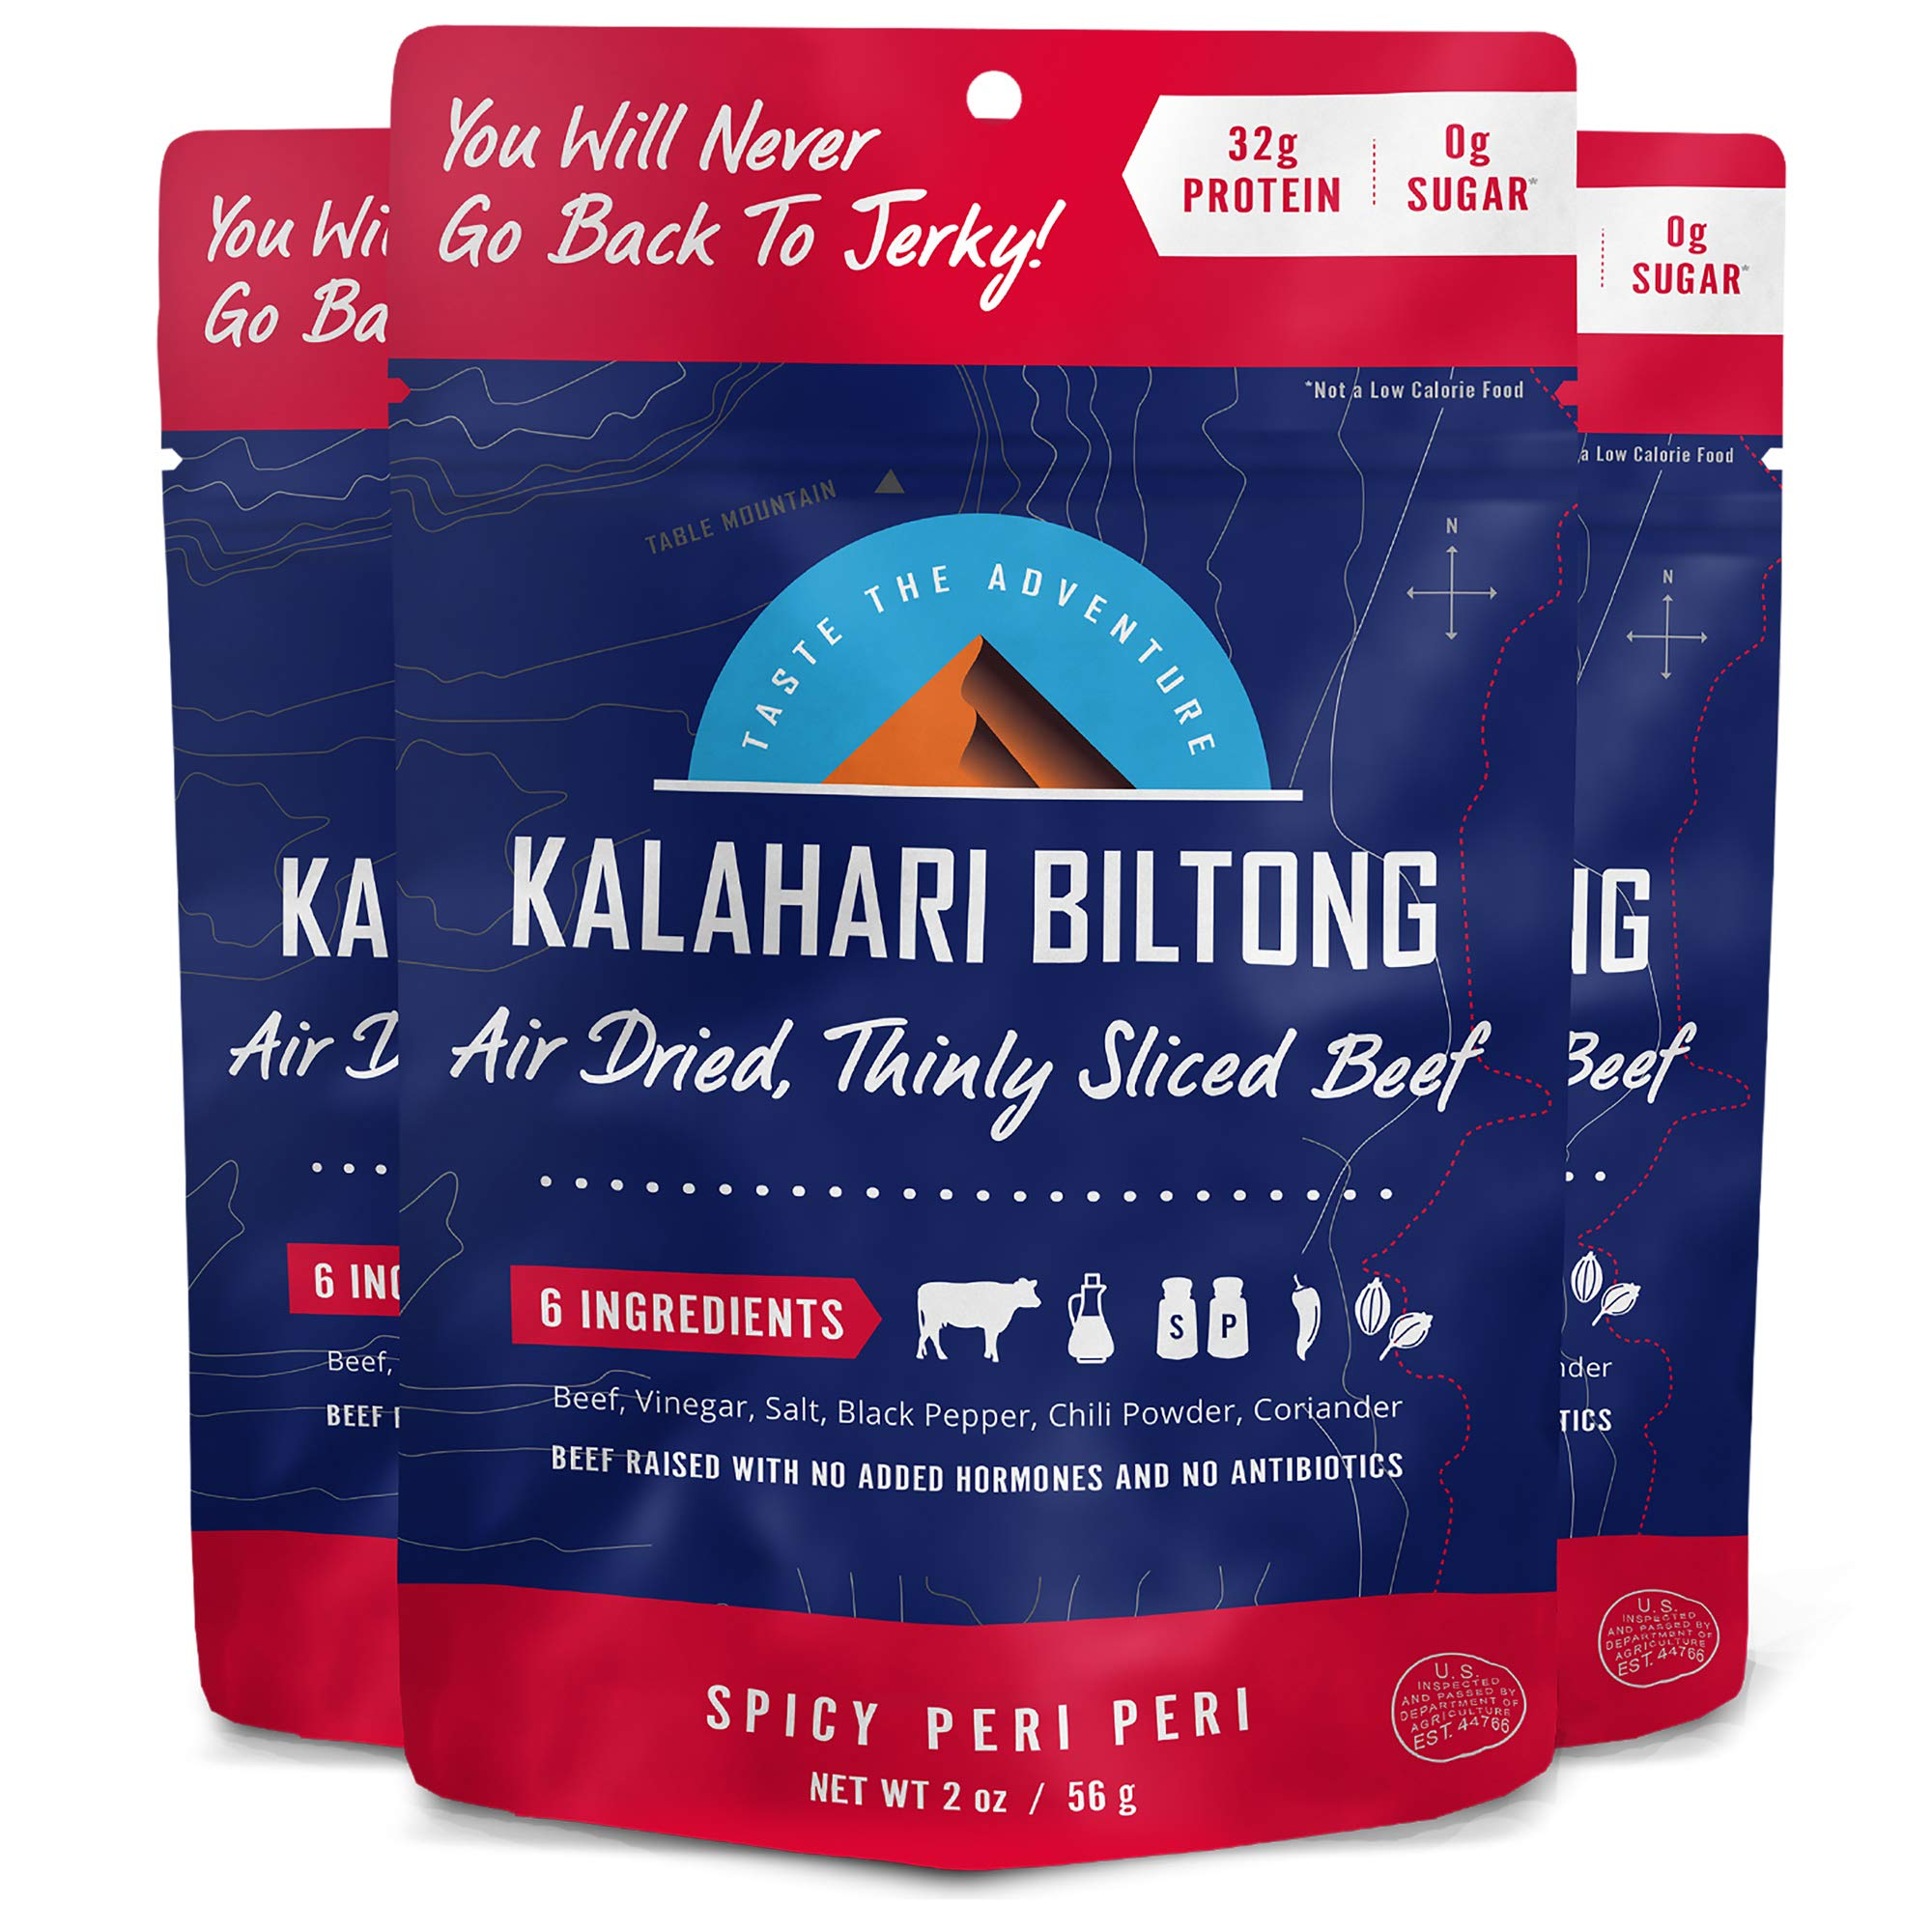 Kalahari Biltong | Air-Dried Thinly Sliced Beef | Spicy Peri Peri | 2oz (Pack of 3) | Zero Sugar | Keto & Paleo | Gluten Free | Better than Jerky